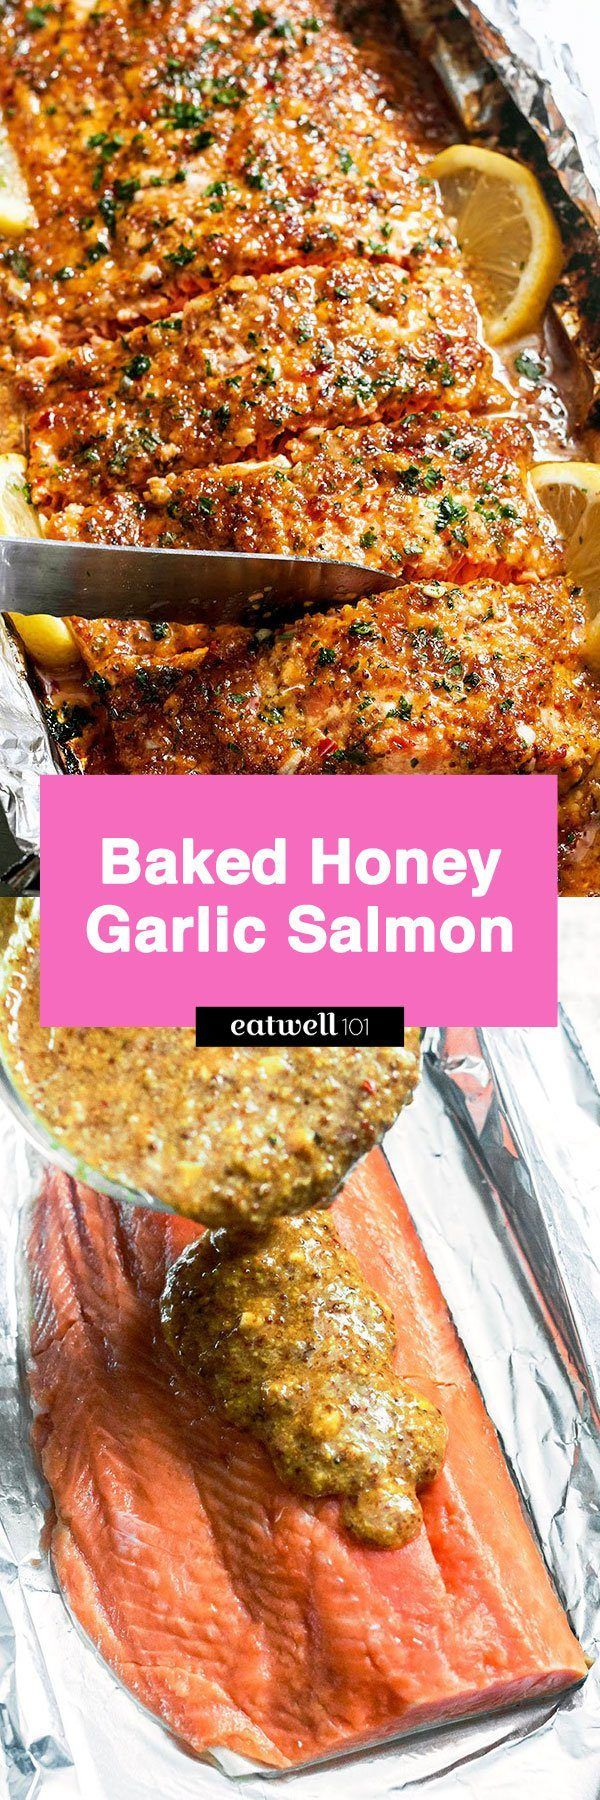 5d0010cca20c0c28ba5fb939dfe1beec #Baked #Salmon in #Foil #recipe   #eatwell101 #recipe Most convenient container f